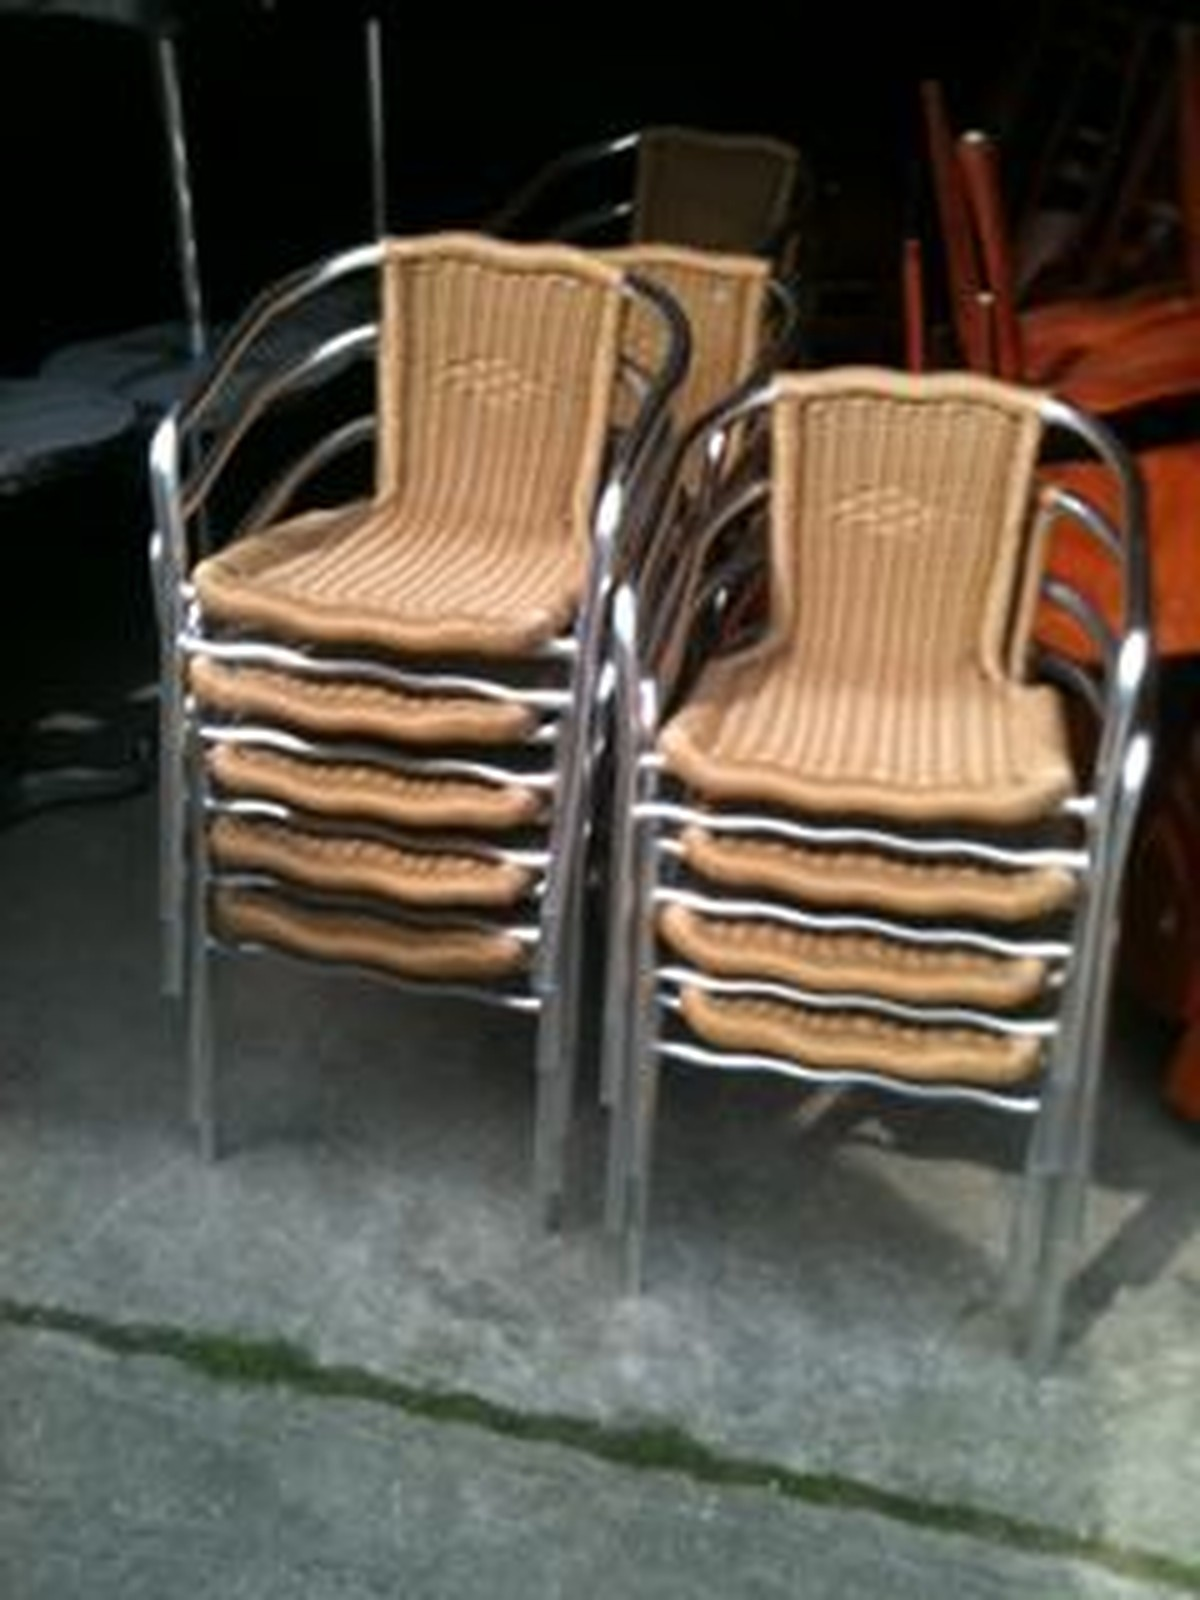 Secondhand Chairs And Tables Pub And Bar Furniture Job Lot Of 187x Mainly Wooden But Some